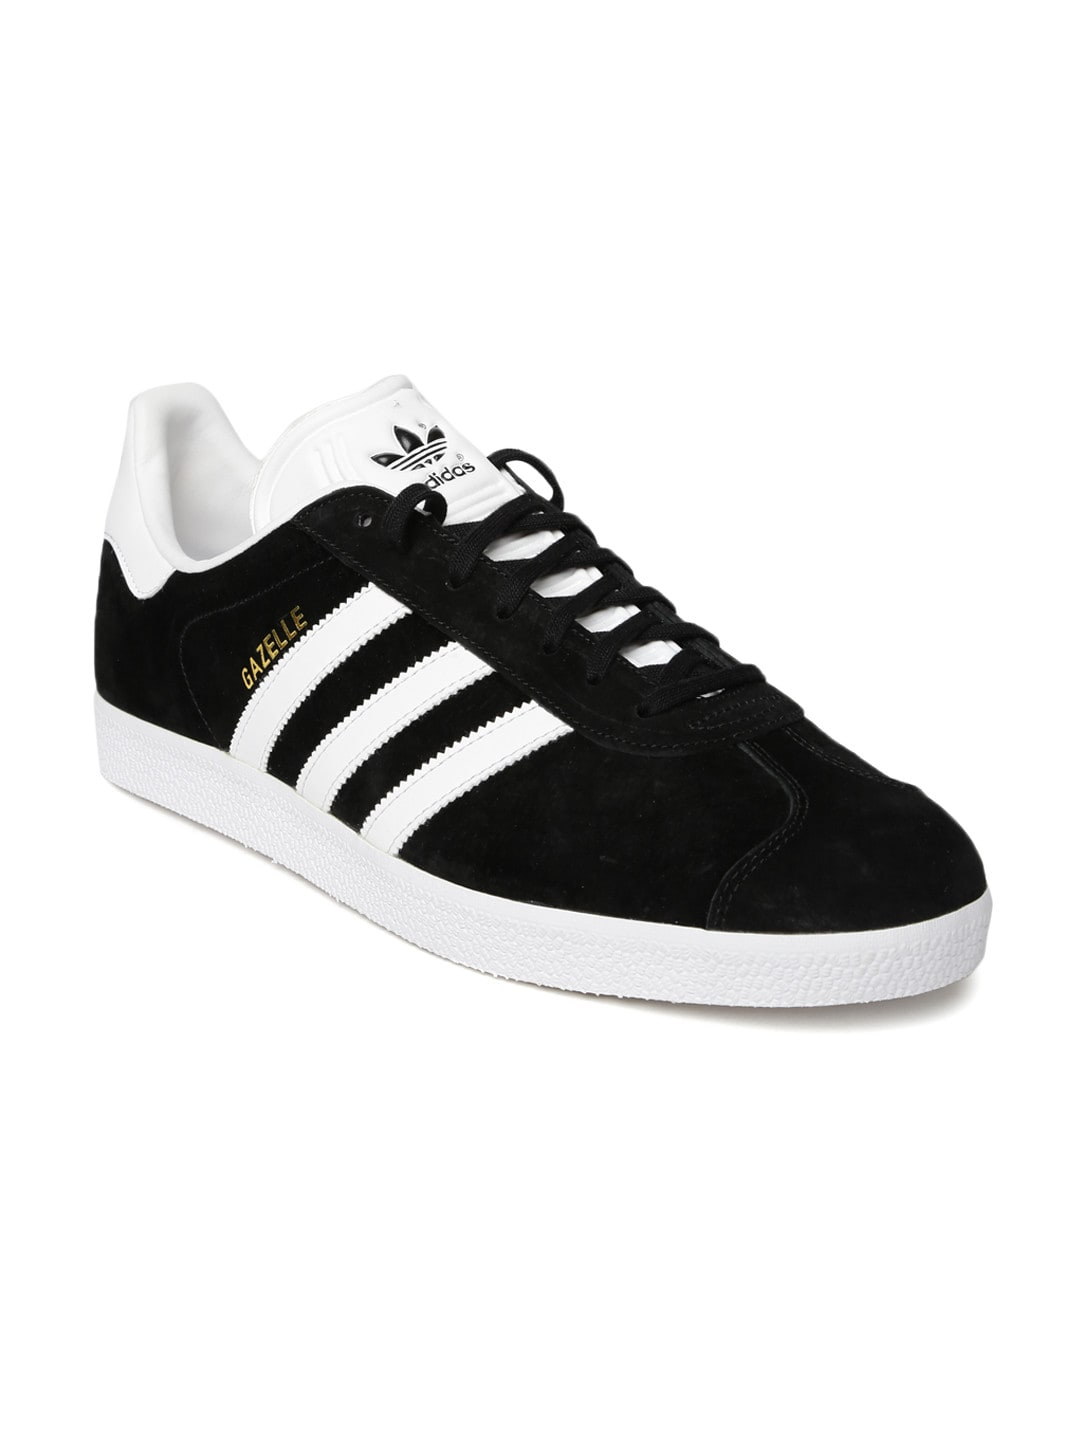 Menamp; Women Shoes Myntra Adidas Online Adidas Shoes Buy for Nn80wOyvmP